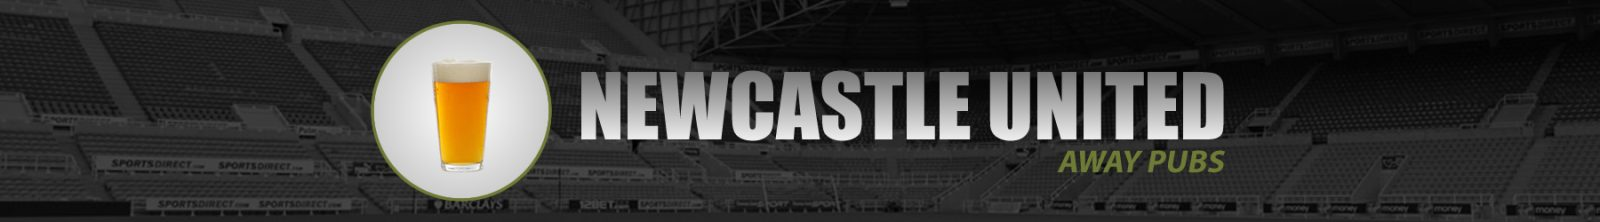 Newcastle United Away Pubs